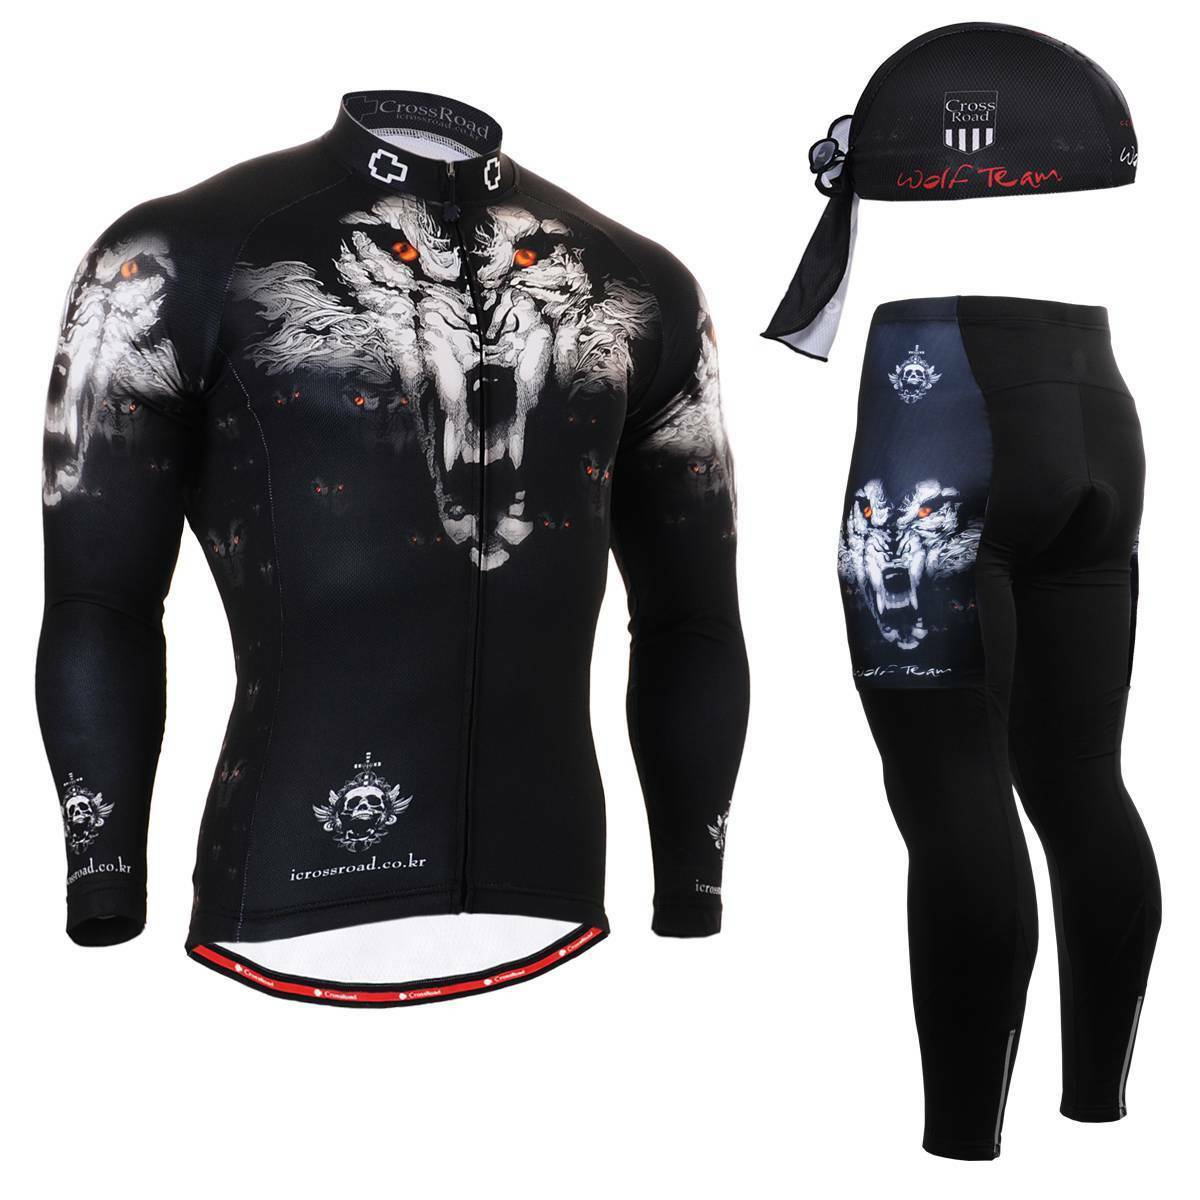 FIXGEAR CS-1801 SET Cycling Jersey & Padded Pants,MTB Bike,BMX,Beanie Free GIFT